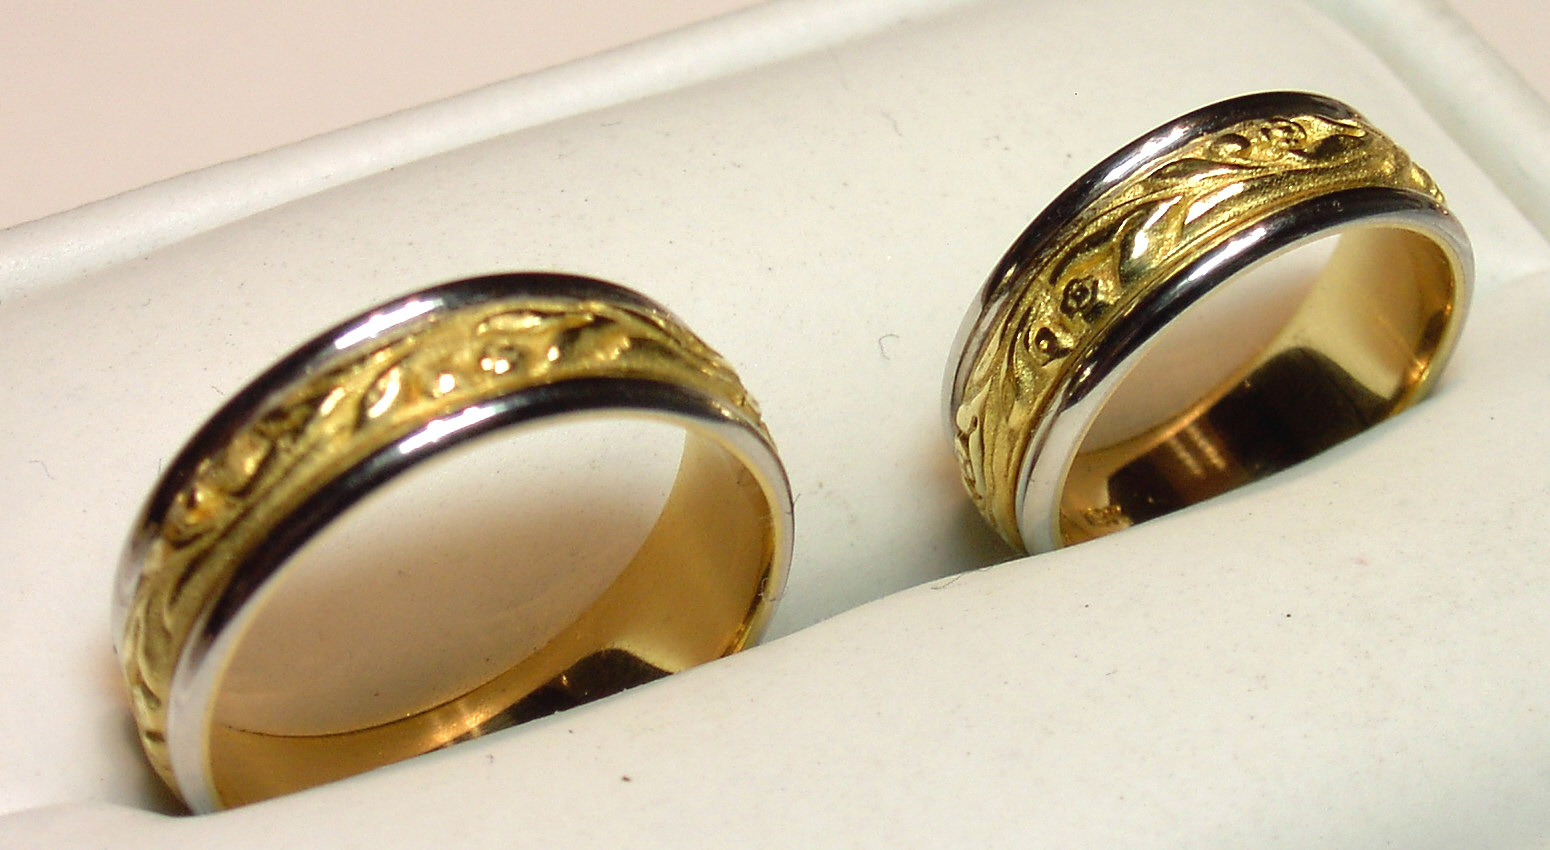 : matching wedding rings for bride and groom